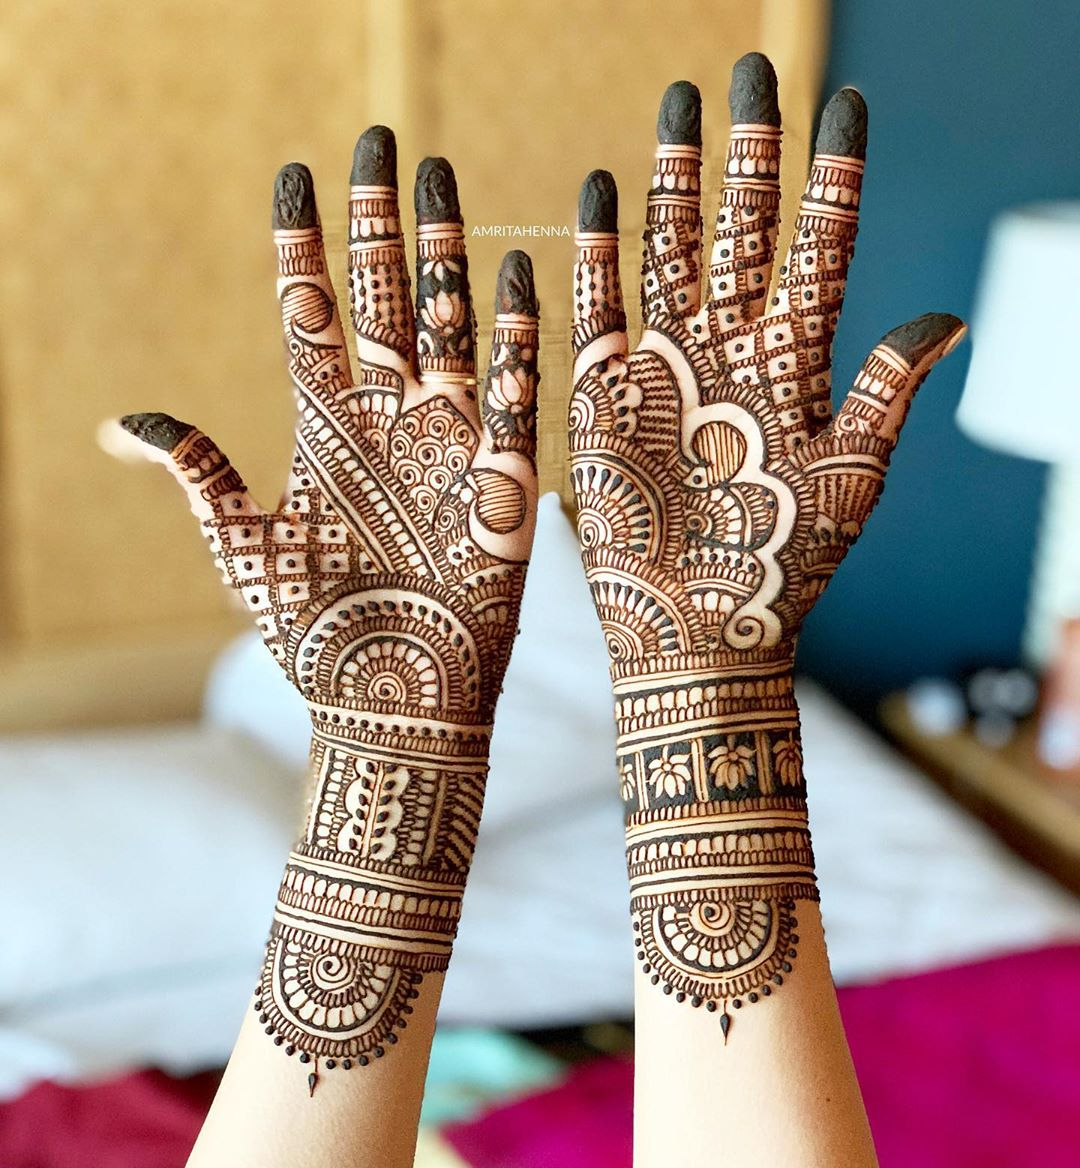 Alluring Marwari style mehendi for adductive brides